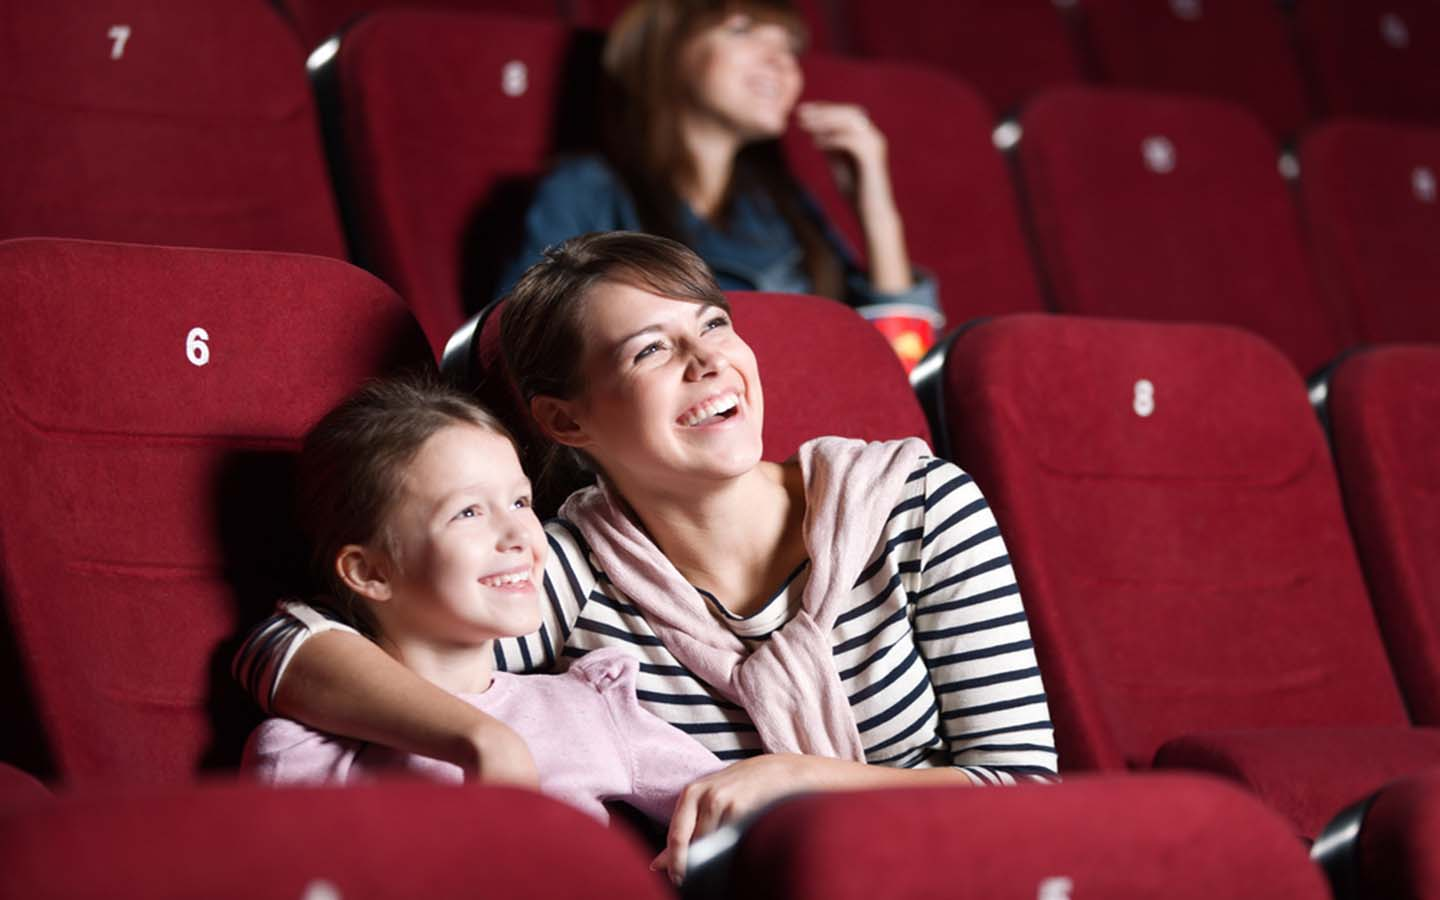 Girl is watching a movie with her mother